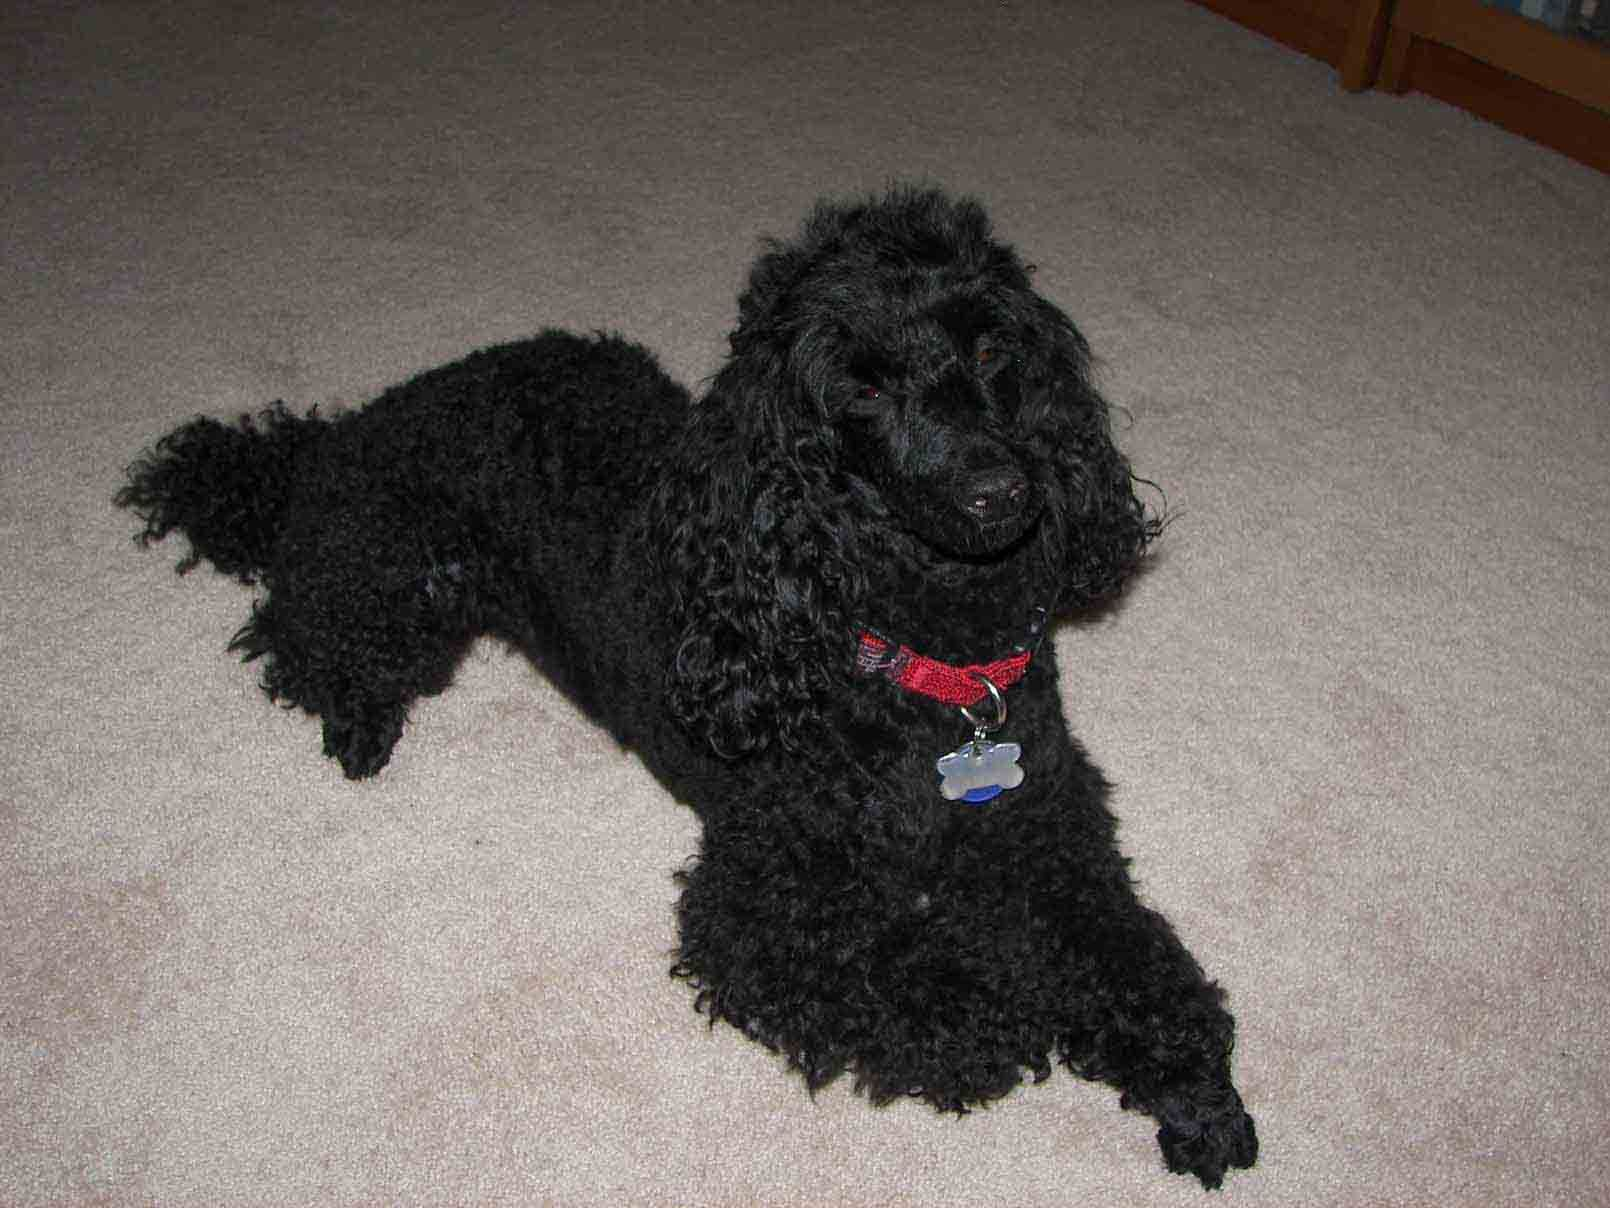 Pet Sitter For Black Miniature Poodle House Sitter Needed Pacific